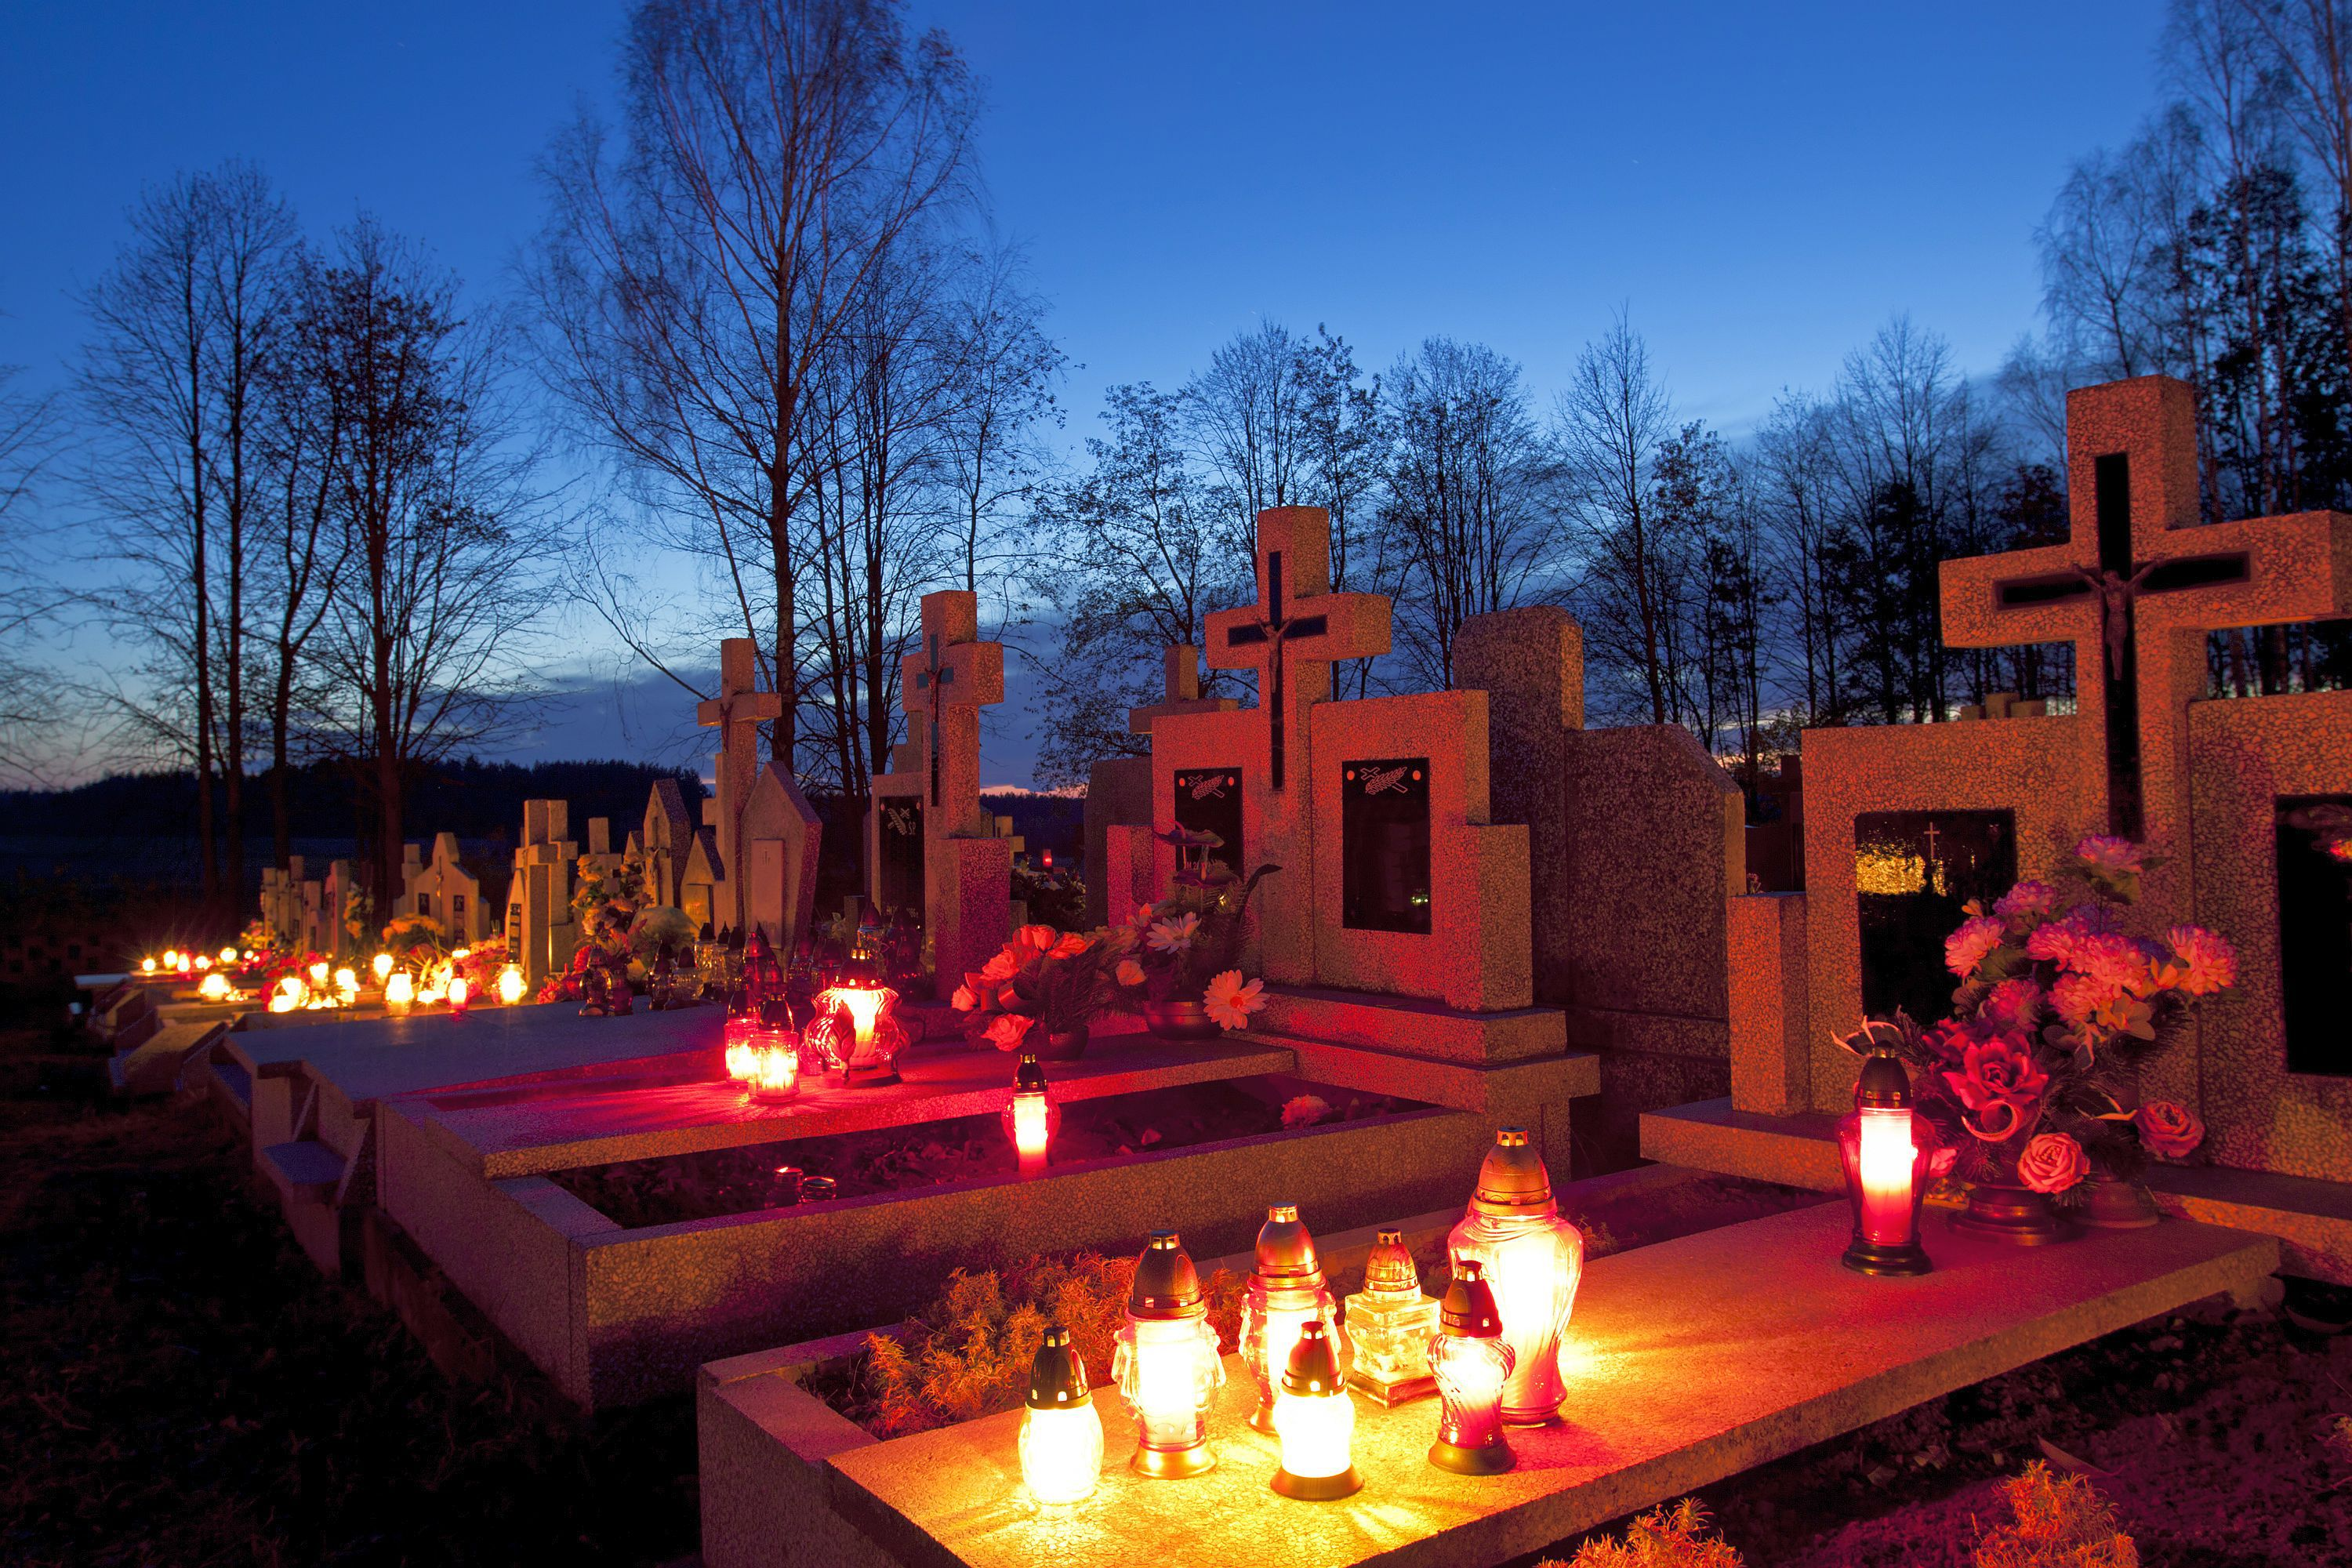 All Saints Day and All Souls Day in Eastern Europe